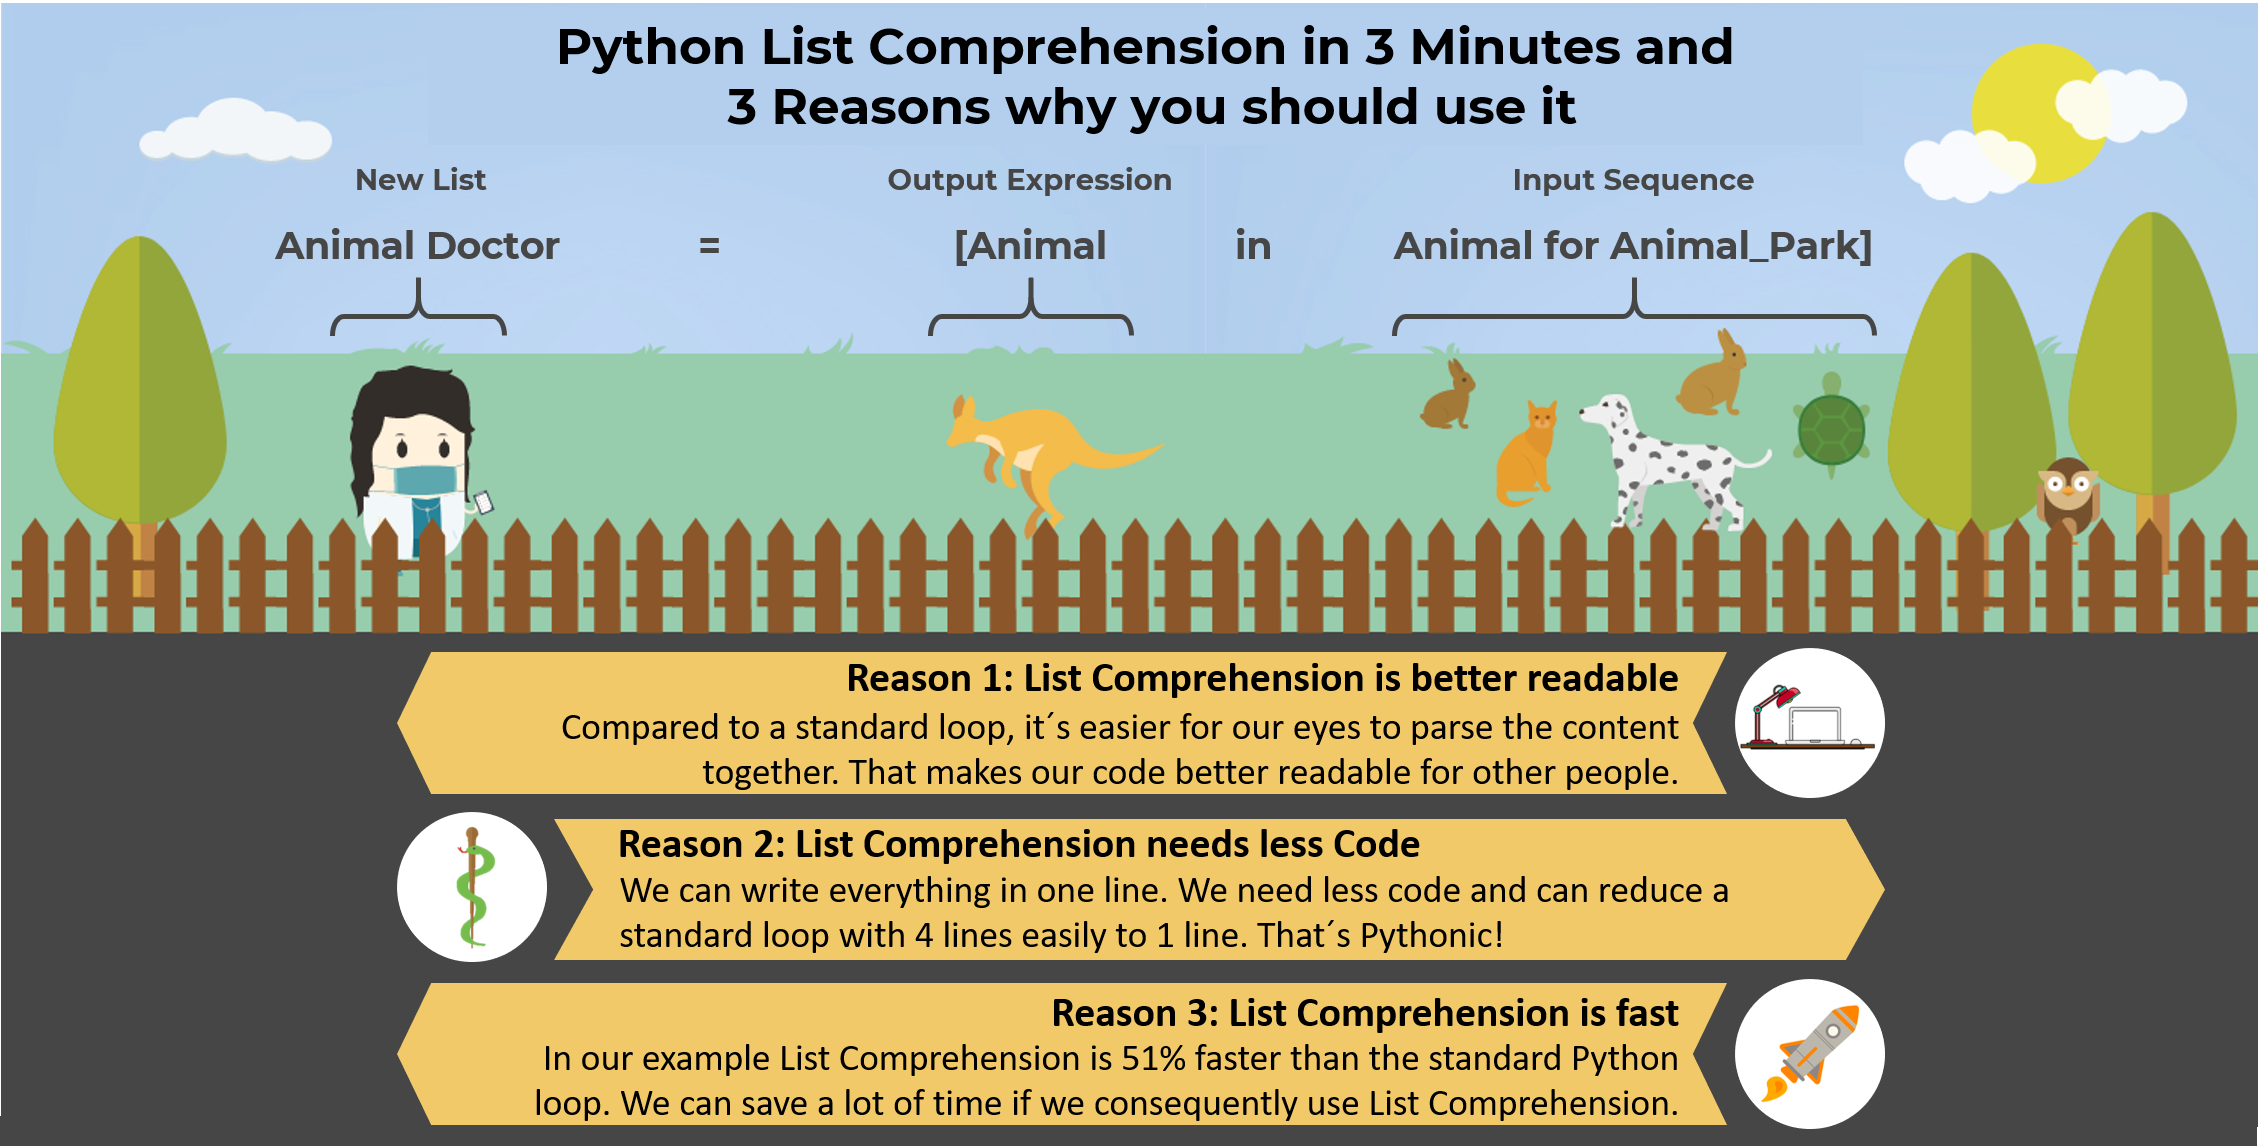 Python List Comprehension in 3 Minutes - Towards Data Science